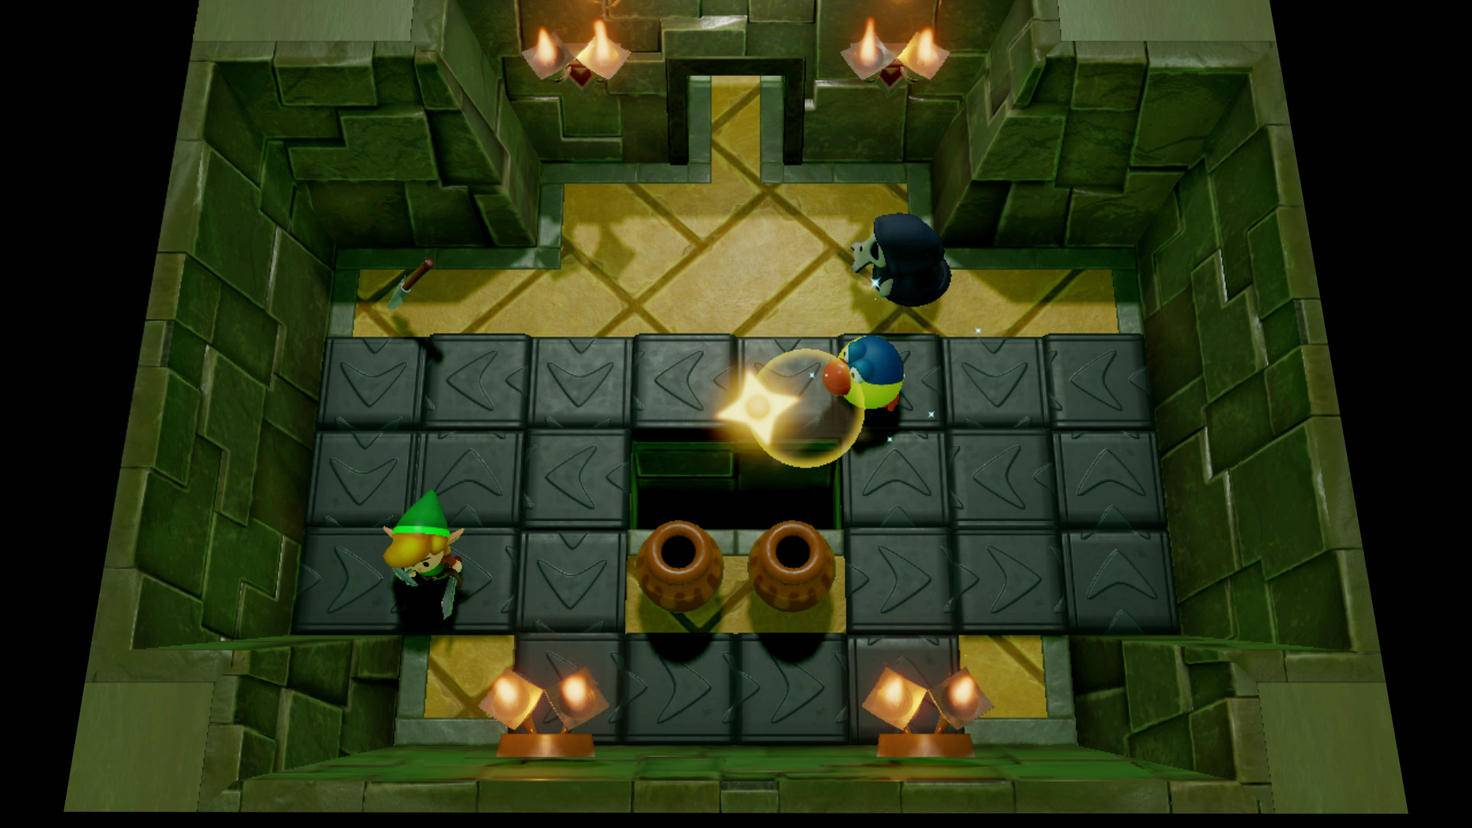 zelda-links-awakening-remake (6)